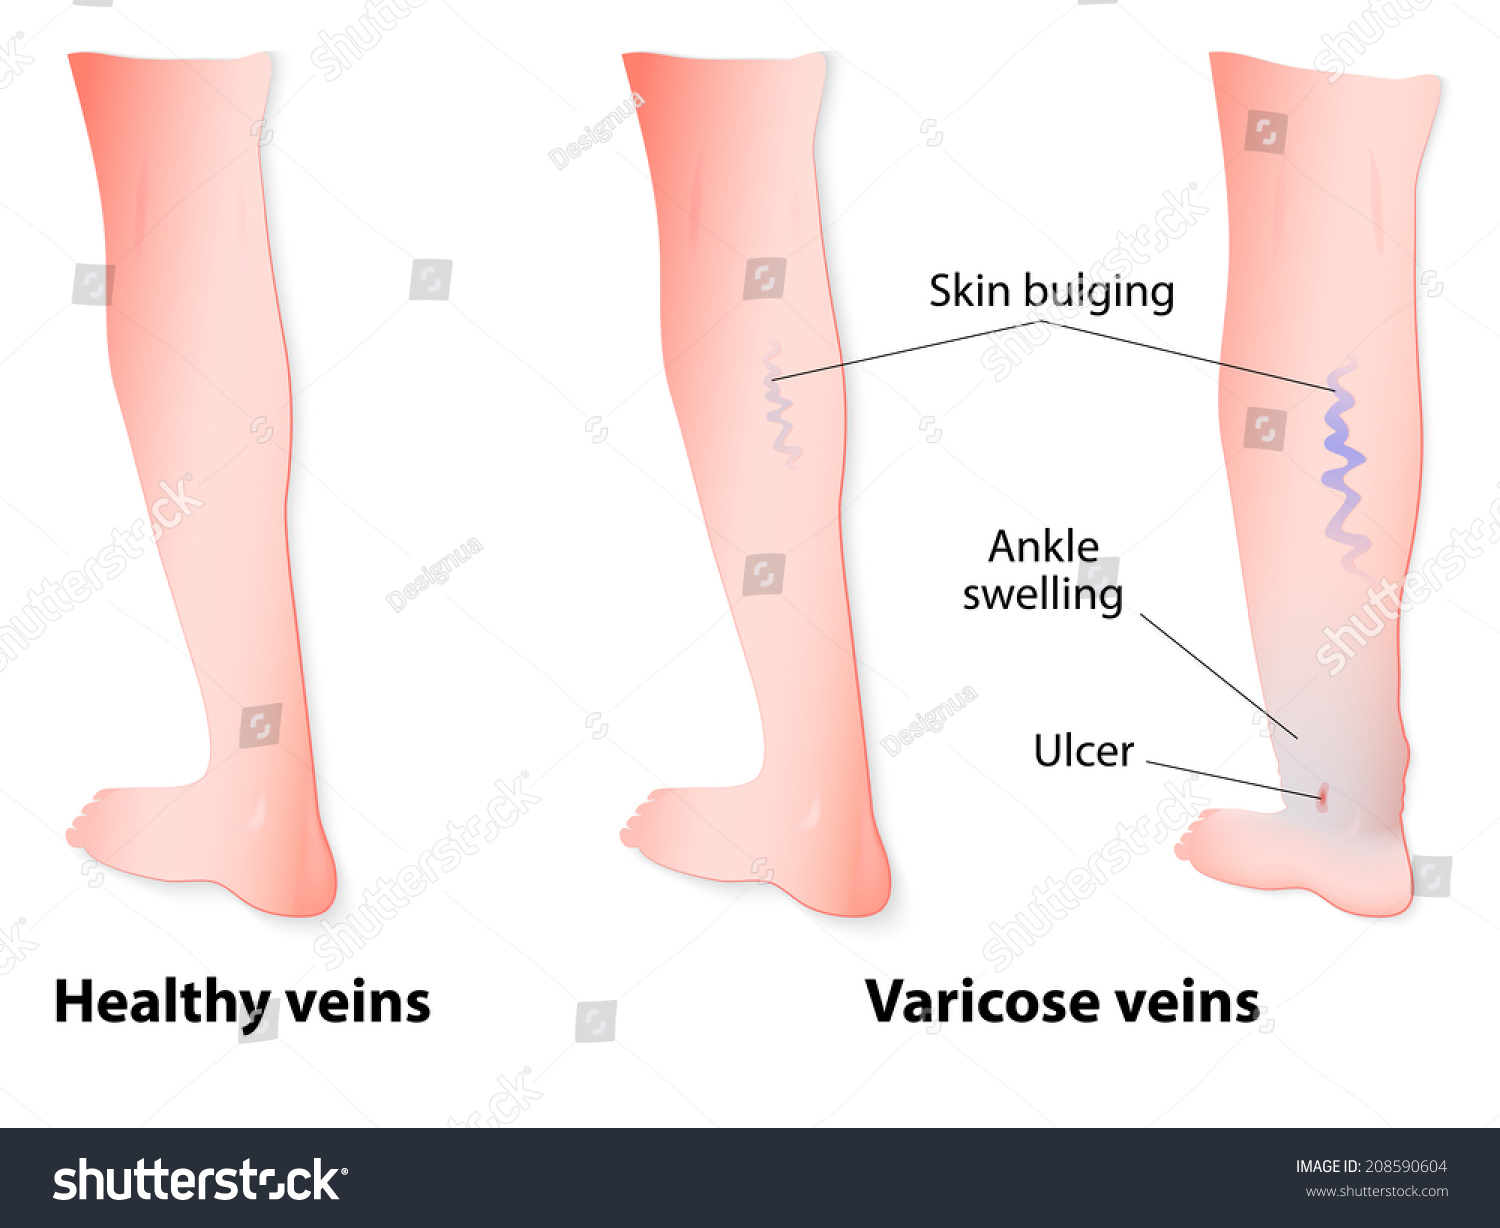 varicose veins twisted enlarged veins blue stock vector ... varicose ulcer diagram cheek ulcer diagram #4